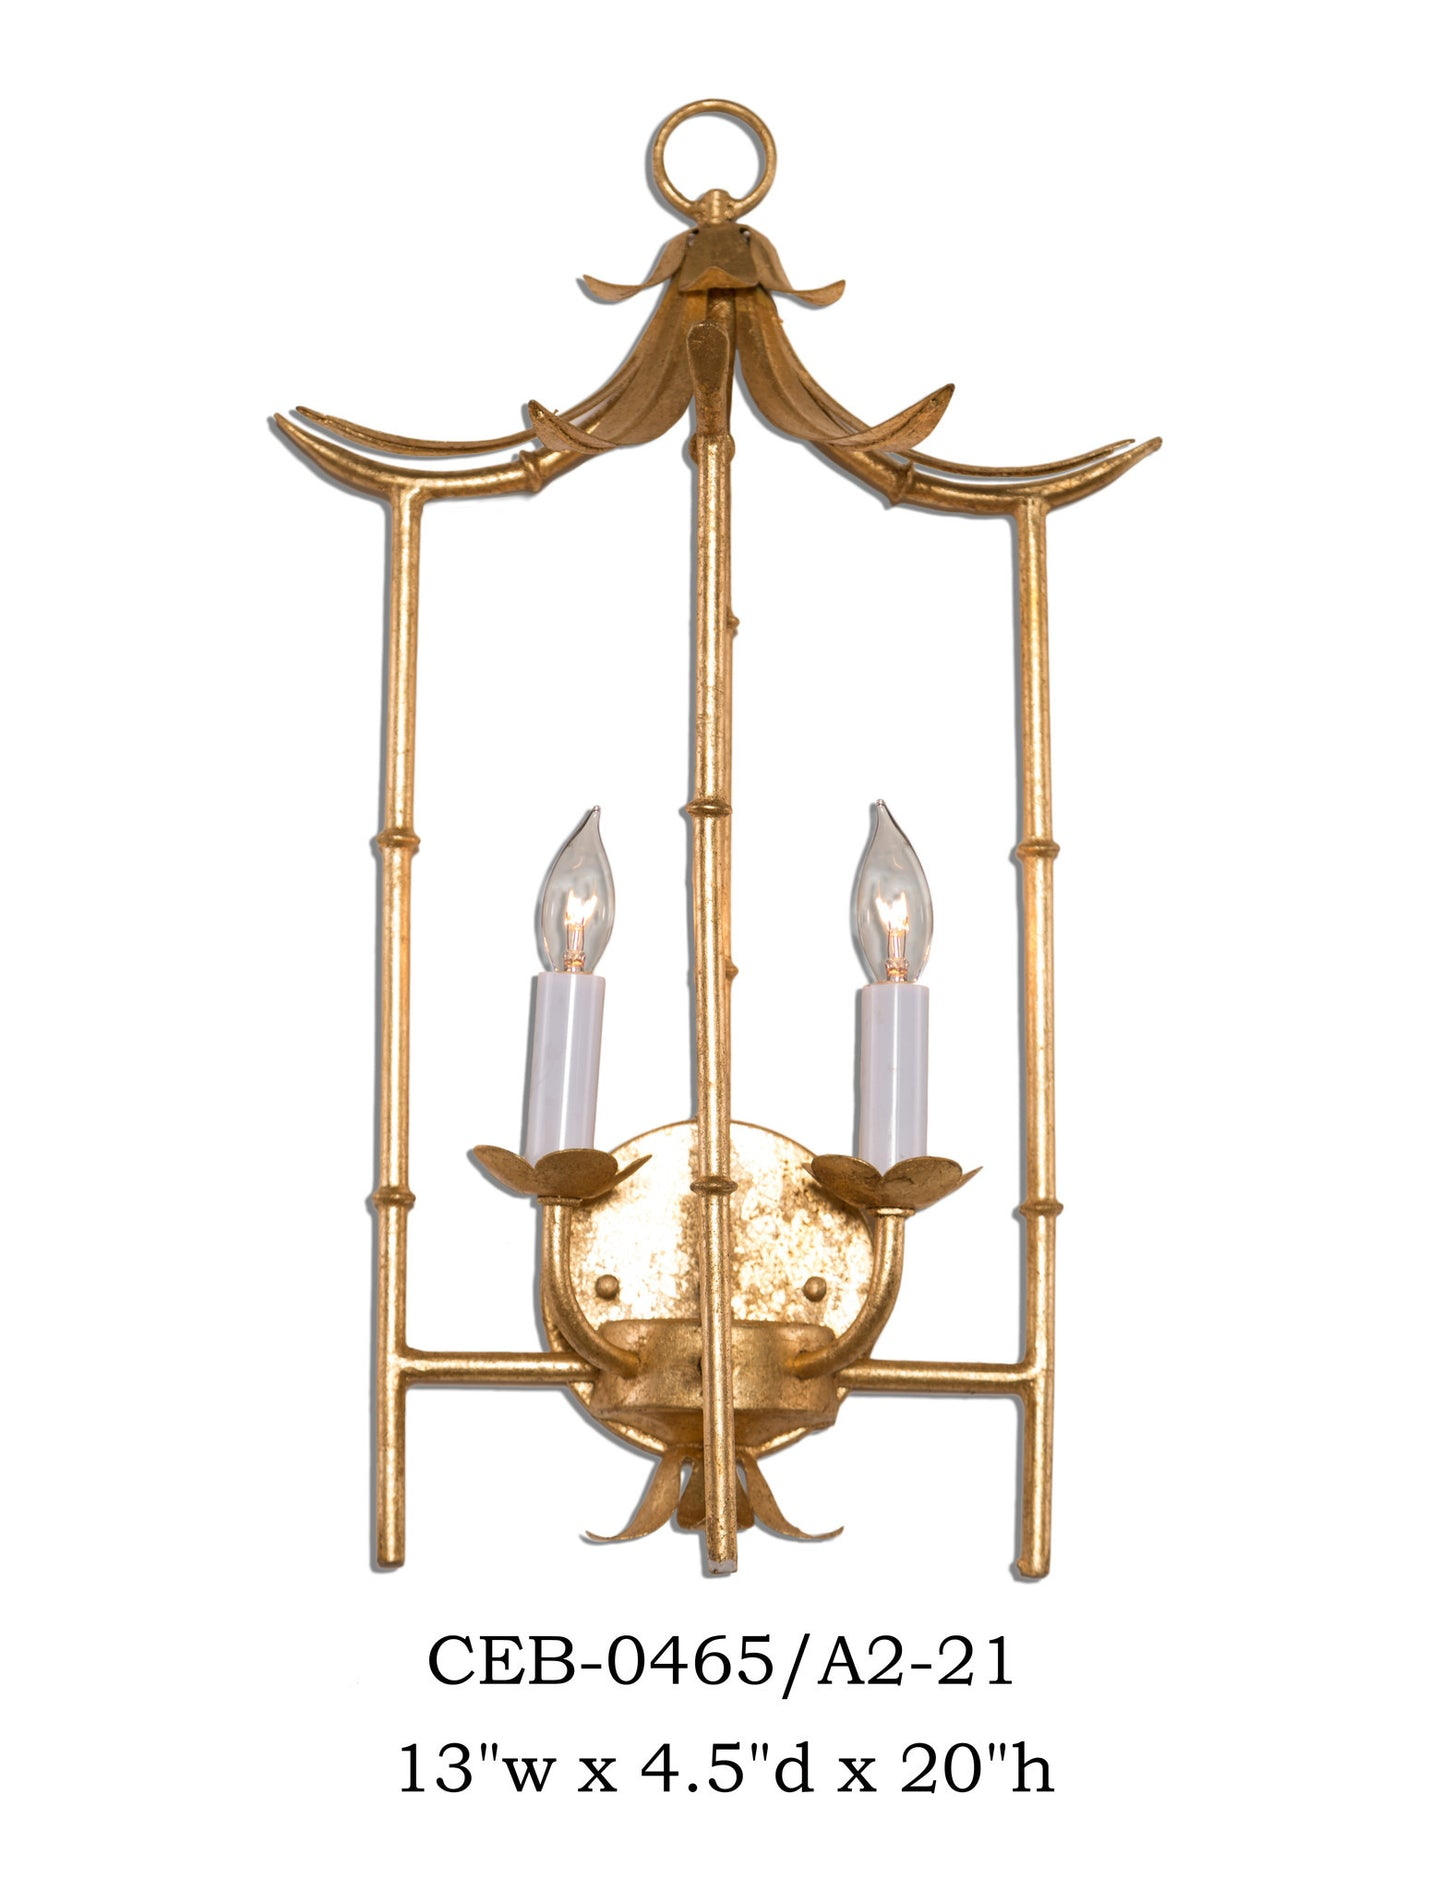 Other Metal Sconce - CEB-0465/A2-21Sconce - Graham's Lighting Memphis, TN